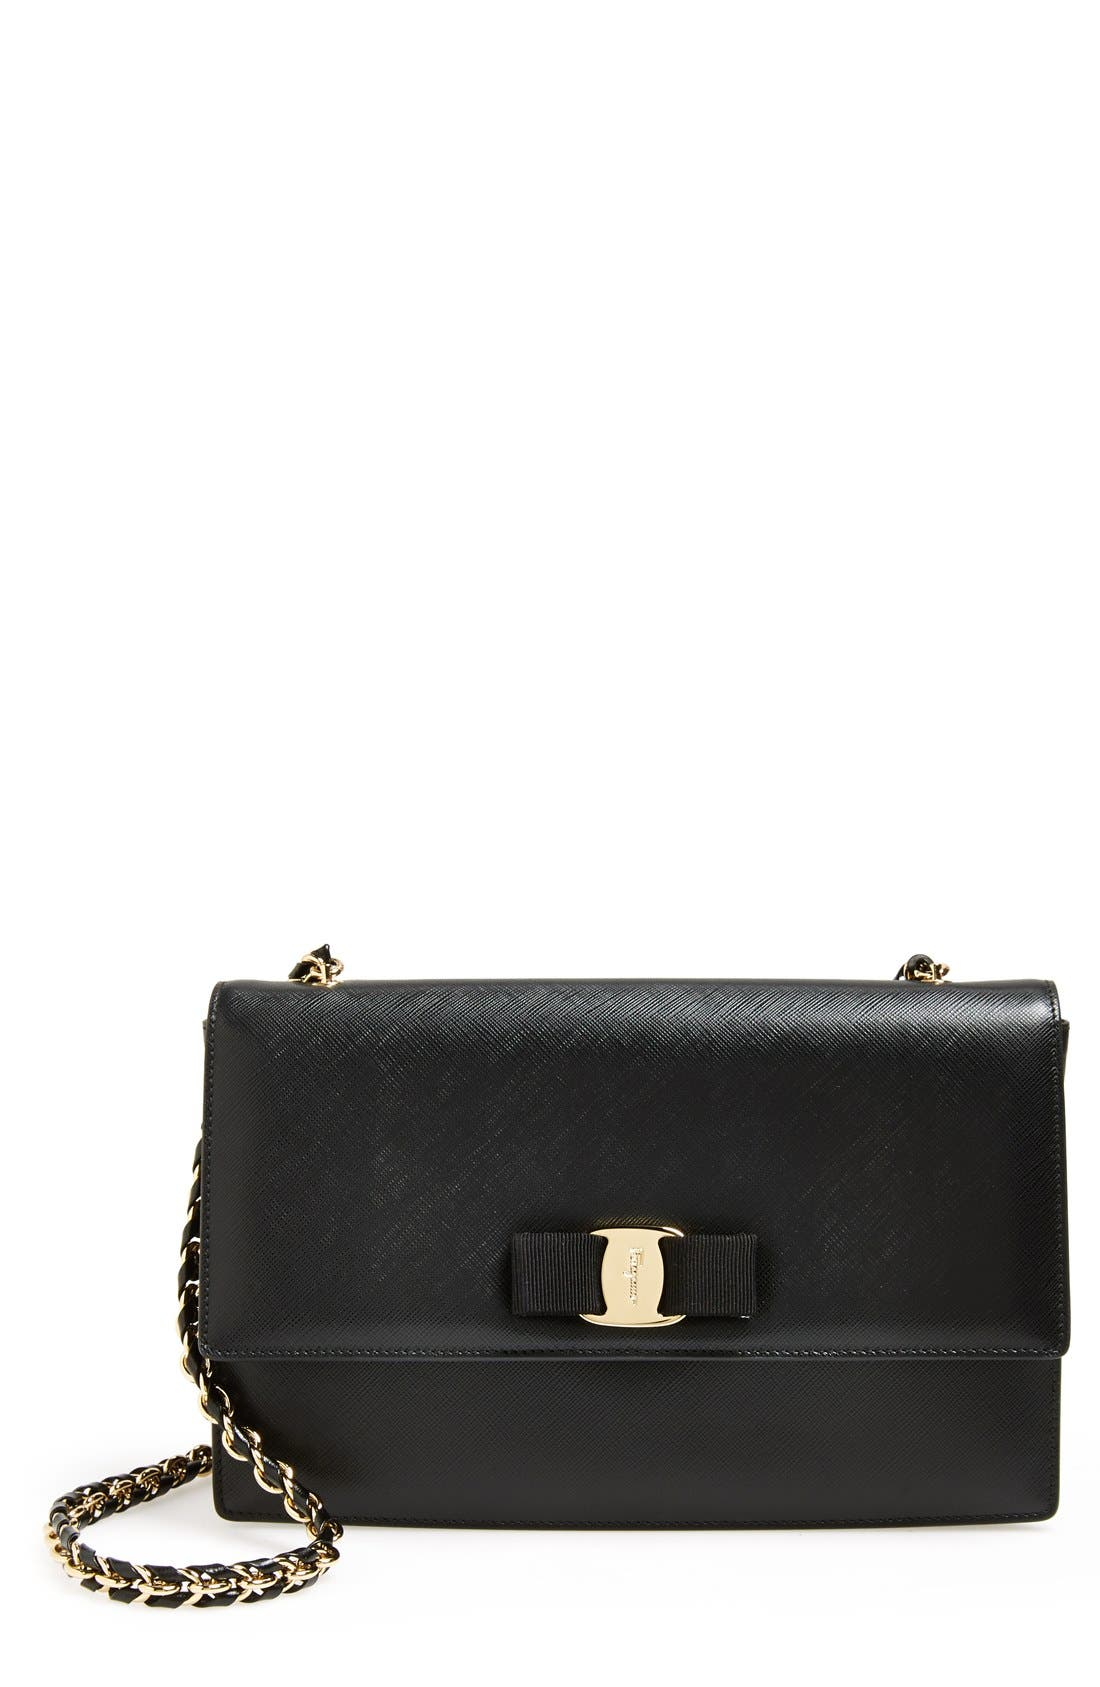 Salvatore Ferragamo 'Ginny' Saffiano Leather Shoulder Bag